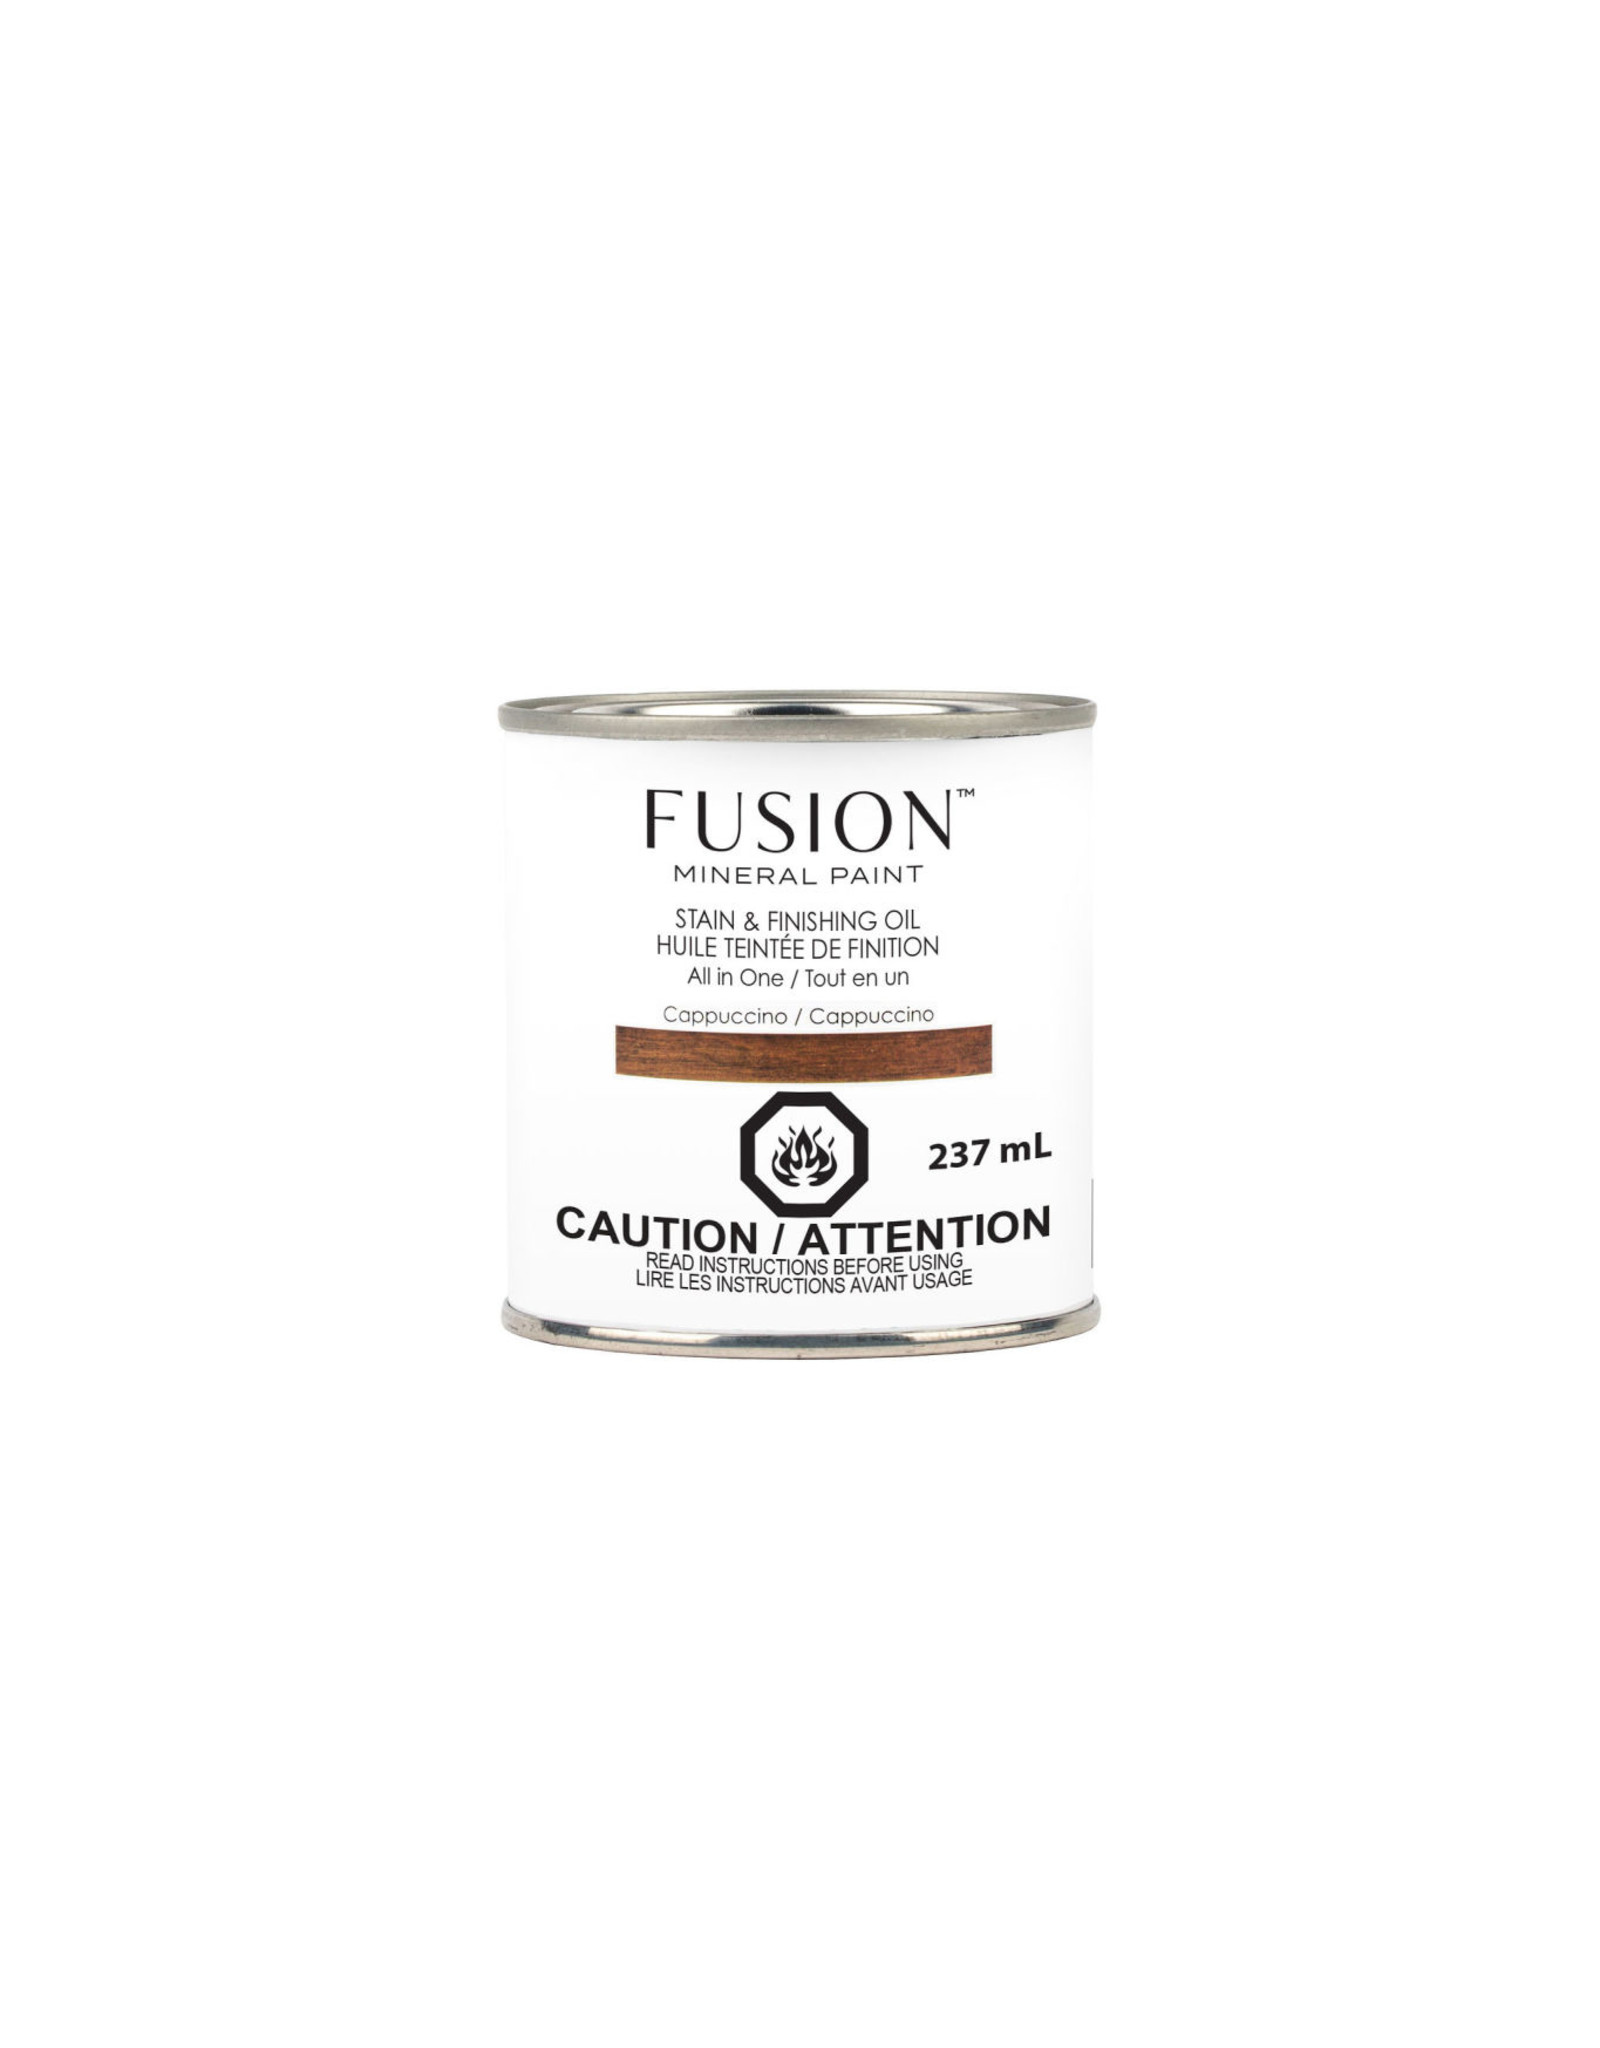 Fusion Mineral Paint Stain & Finishing Oil - Cappuccino